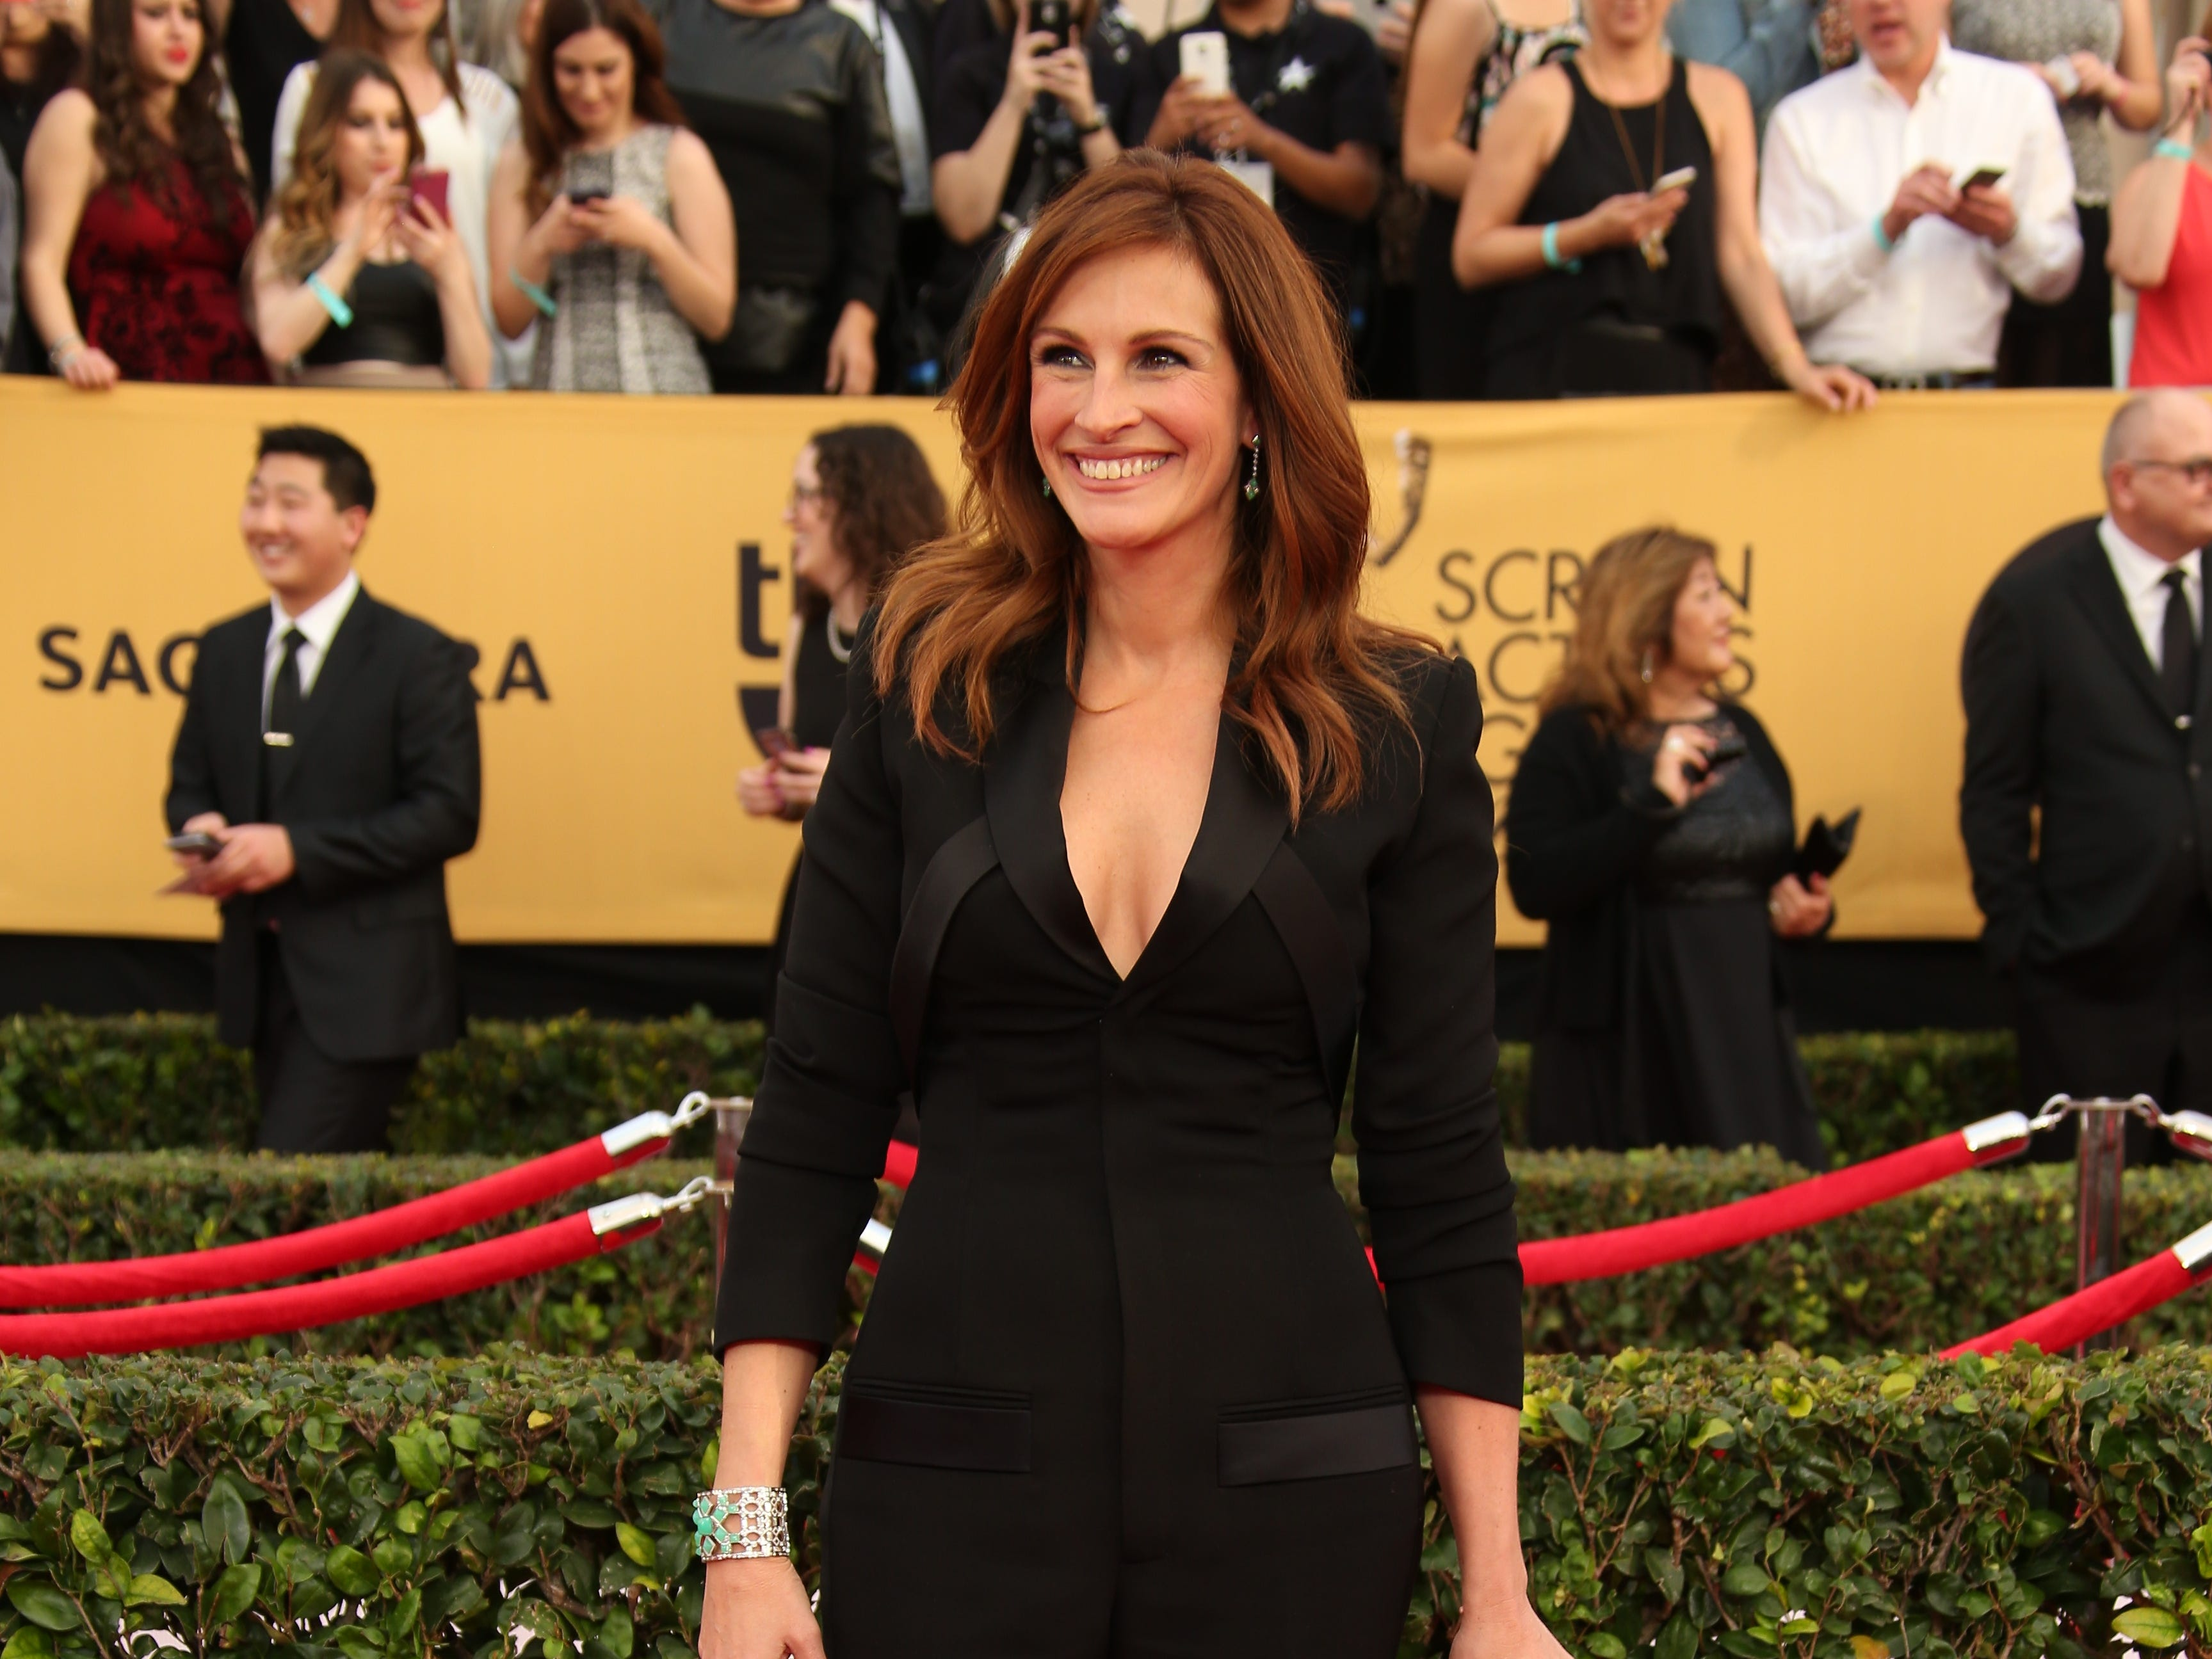 1/25/15 4:28:37 PM -- Los Angeles, CA, U.S.A  -- Julia Roberts arrives at the 21st Screen Actors Guild Awards at the Shrine Auditorium in Los Angeles, CA--    Photo by Dan MacMedan, USA TODAY contract photographer  ORG XMIT:  DM 132367 2015 SAG AWARDS 1/25/2015 (Via OlyDrop)